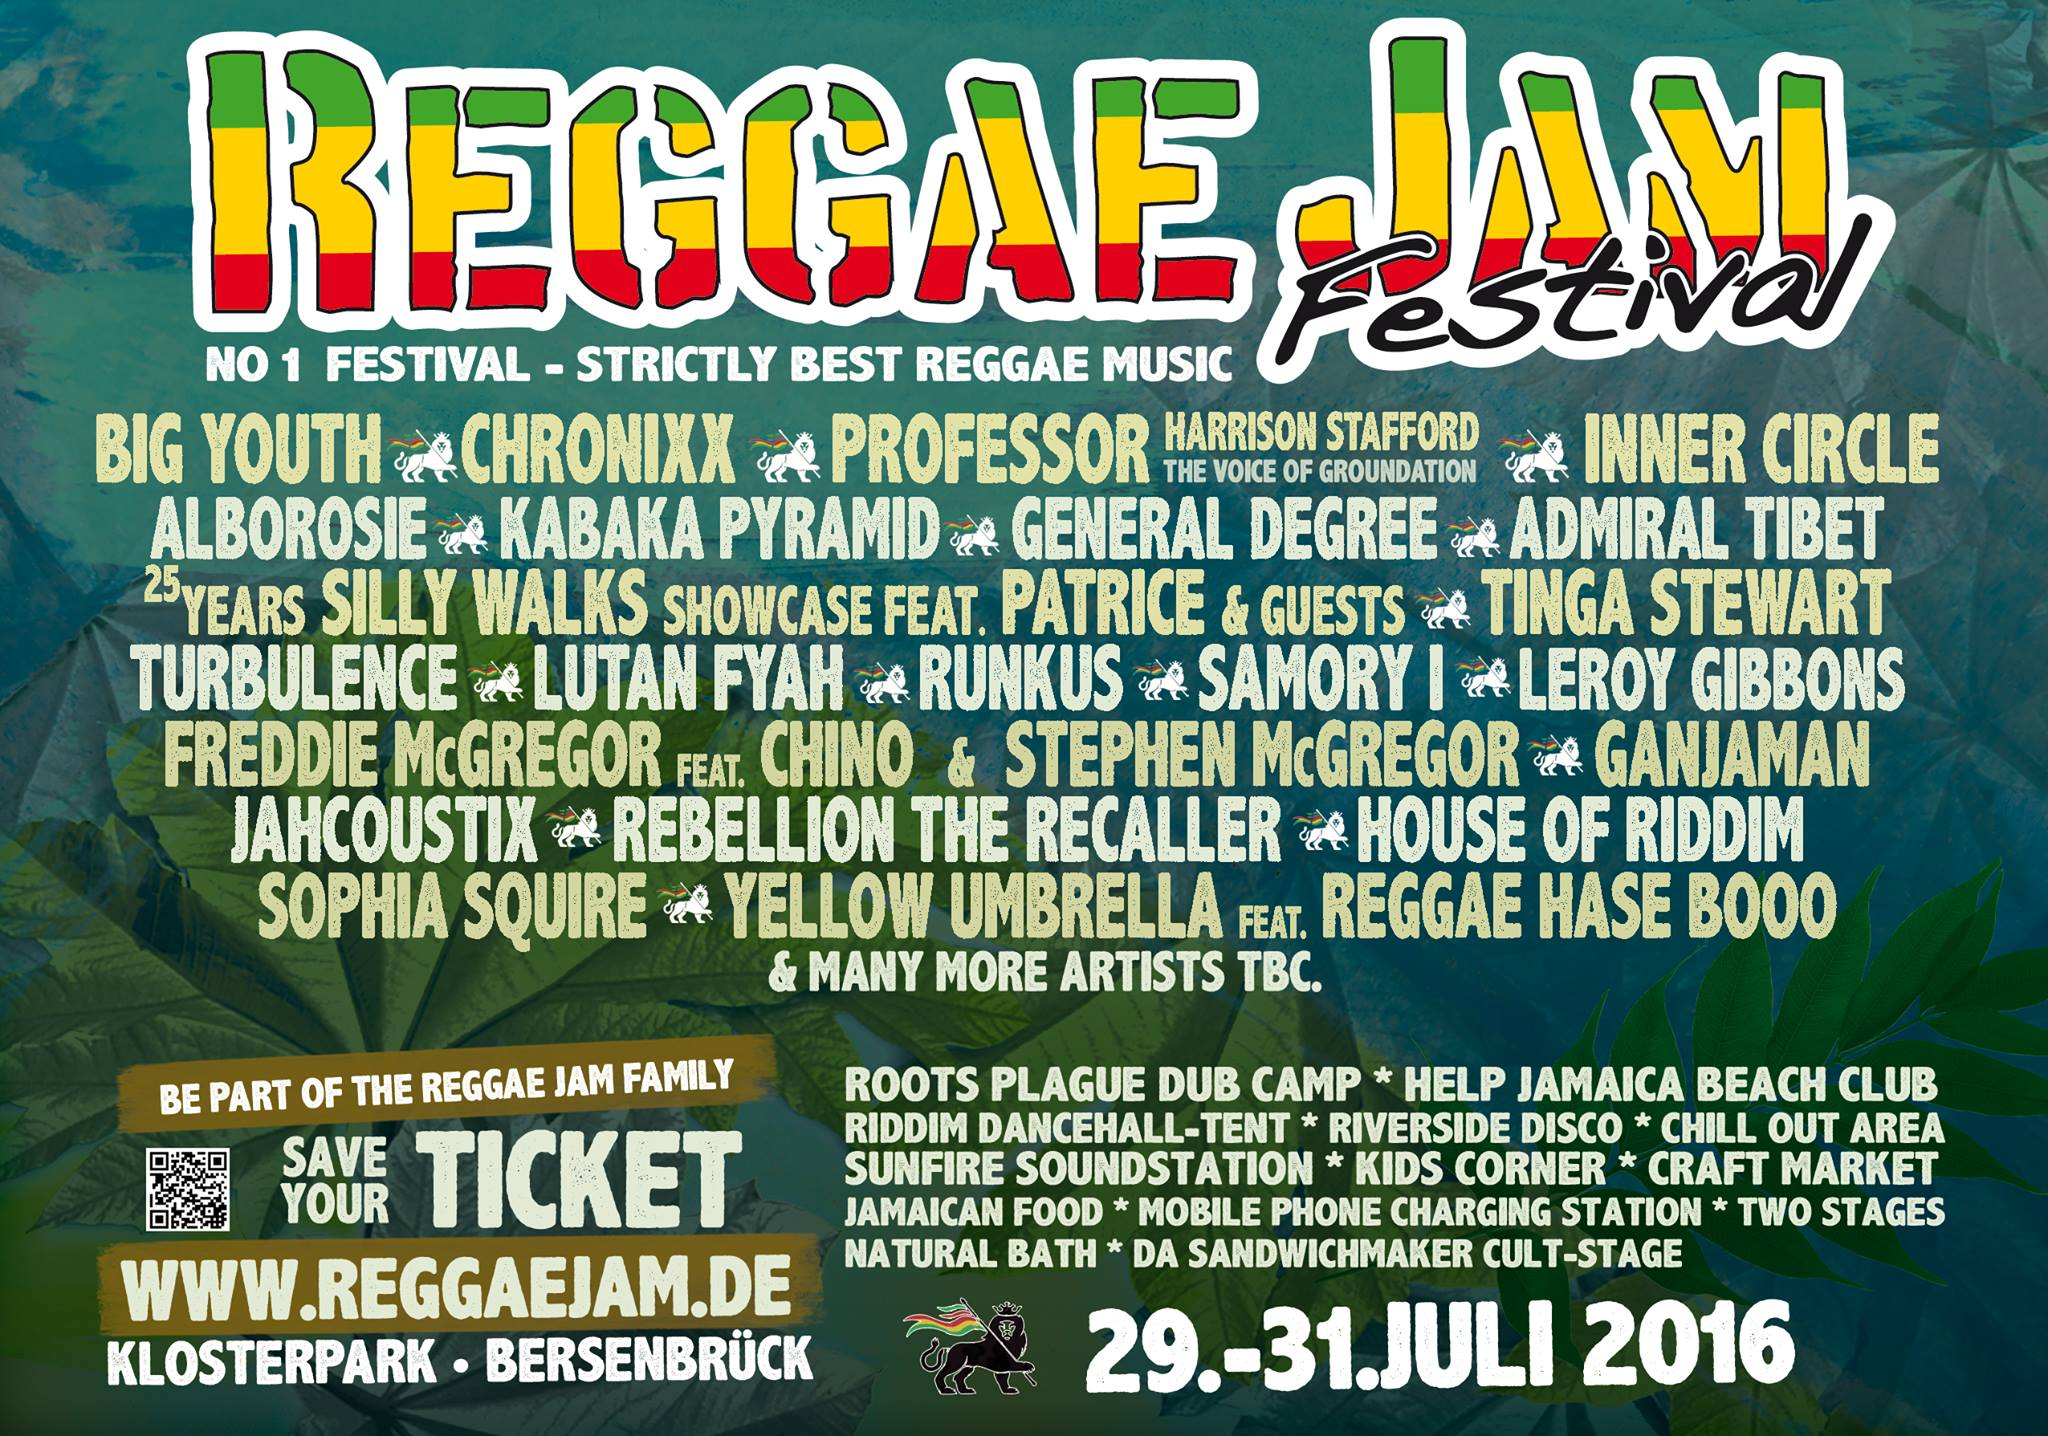 Reggae Jam Festival 2016 - Dreadbag.de on siin!